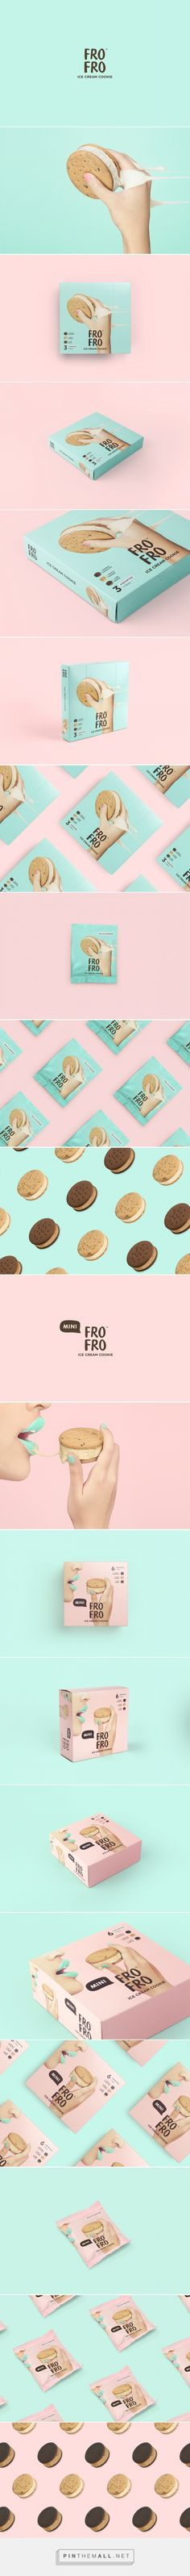 FRO FRO ‪‎cookies‬ ‪‎packaging‬ ‪‎design‬ by Bravo (‪Singapore‬) - http://www.packagingoftheworld.com/2016/08/fro-fro.html